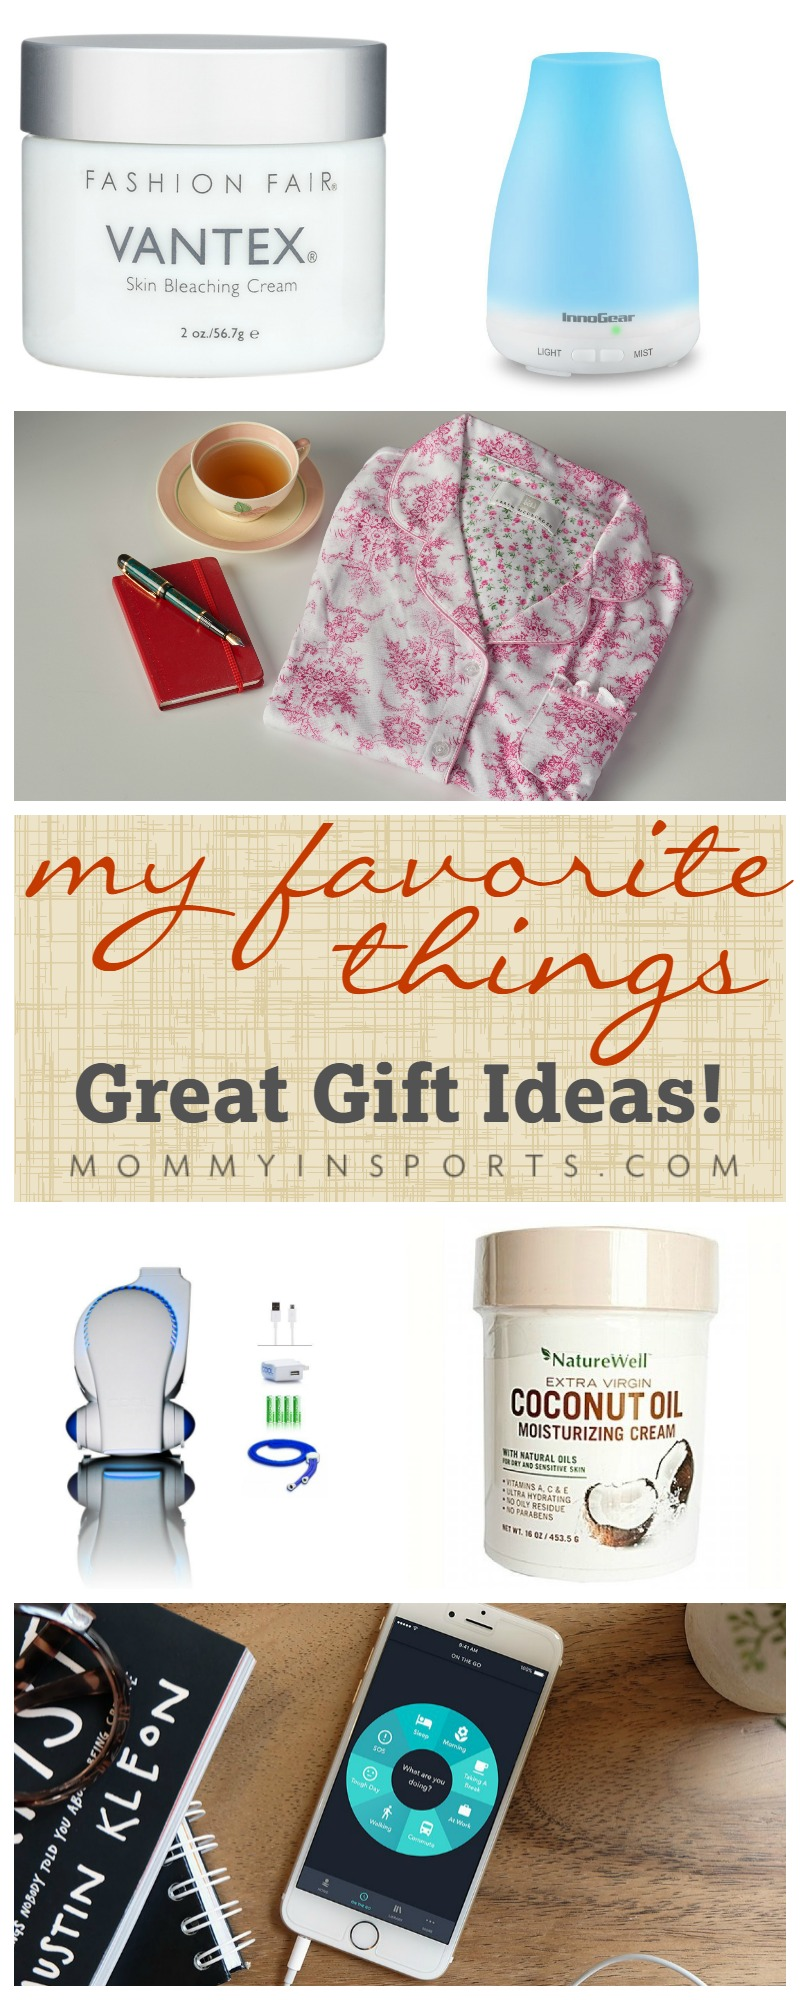 Sometimes you find products you love that you can't wait to share! These are my favorite things lately, and most would make GREAT gift ideas!